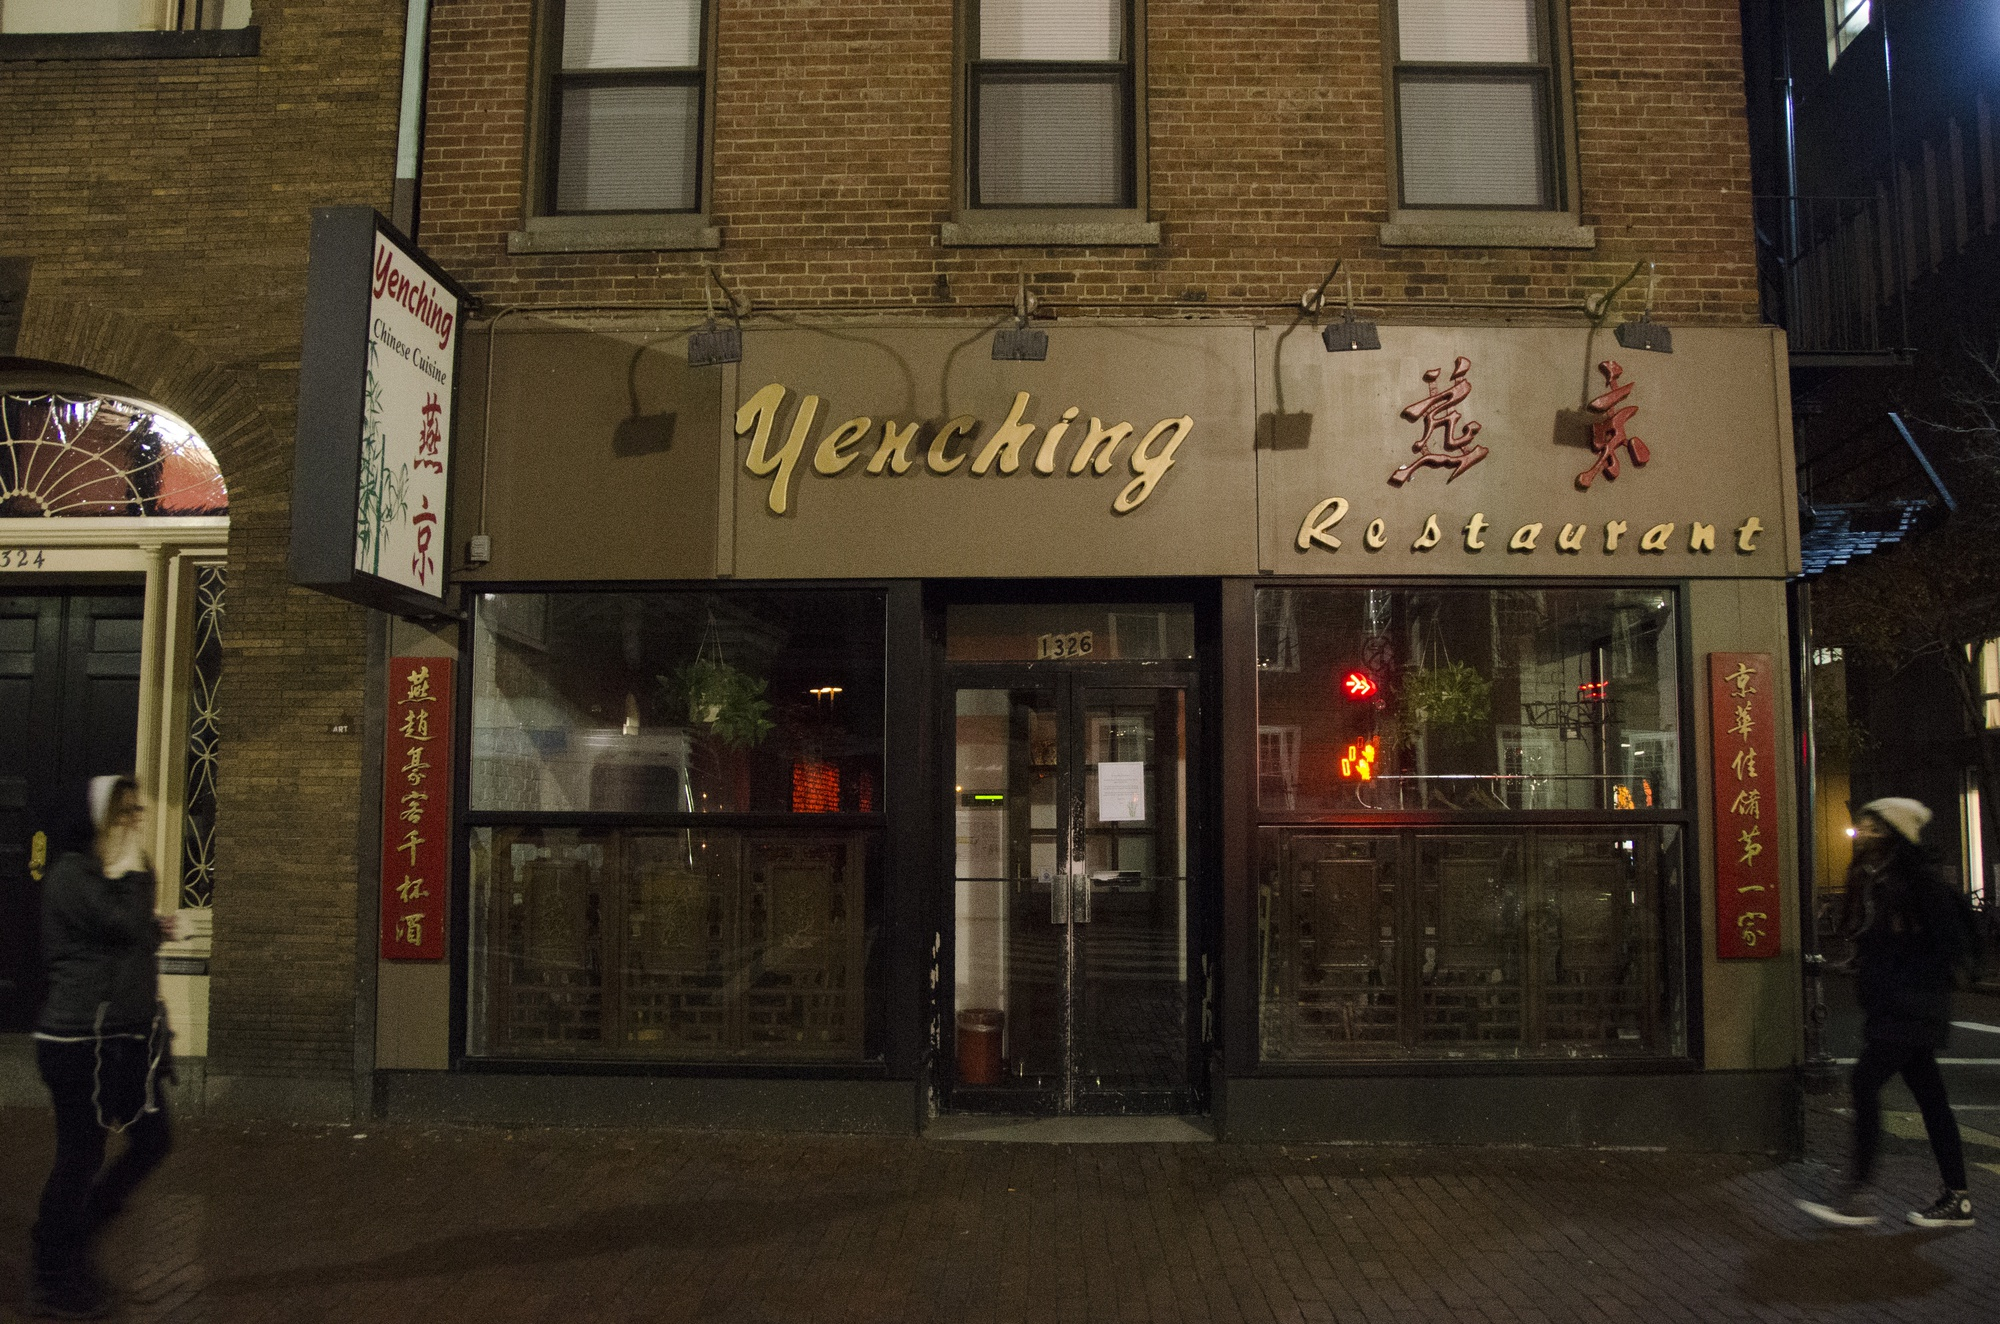 Yenching Restaurant, pictured on Monday evening. The eatery, which has been serving Harvard Square for 40 years, closed on Sunday.